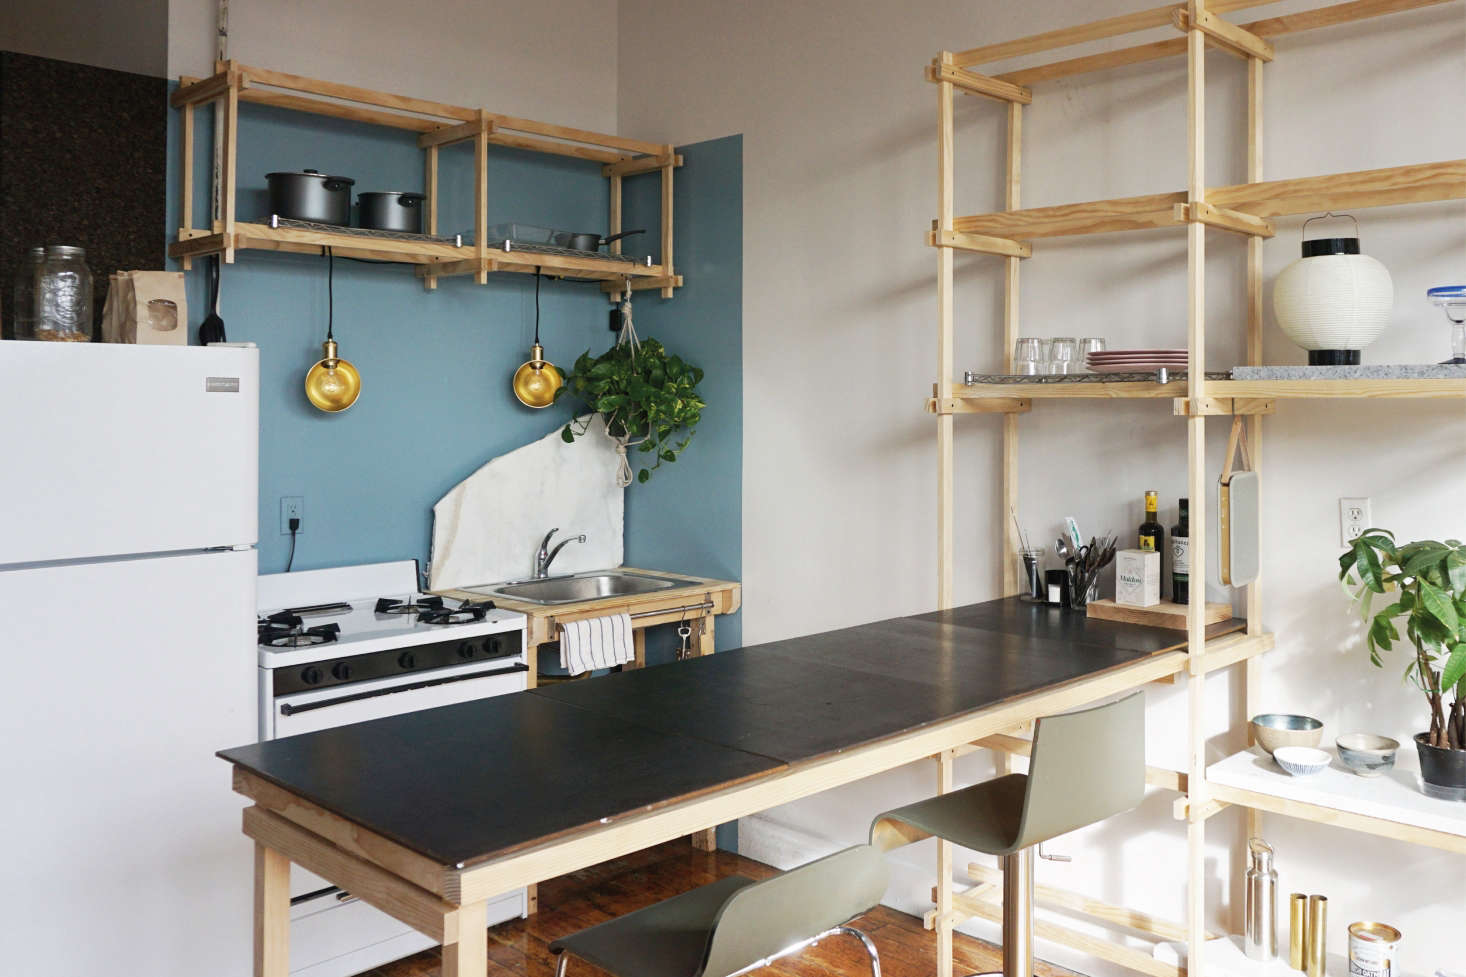 A Two-Week, $1,000, 500-Square-Foot Rental Overhaul by a Design Student in Bushwick, Brooklyn